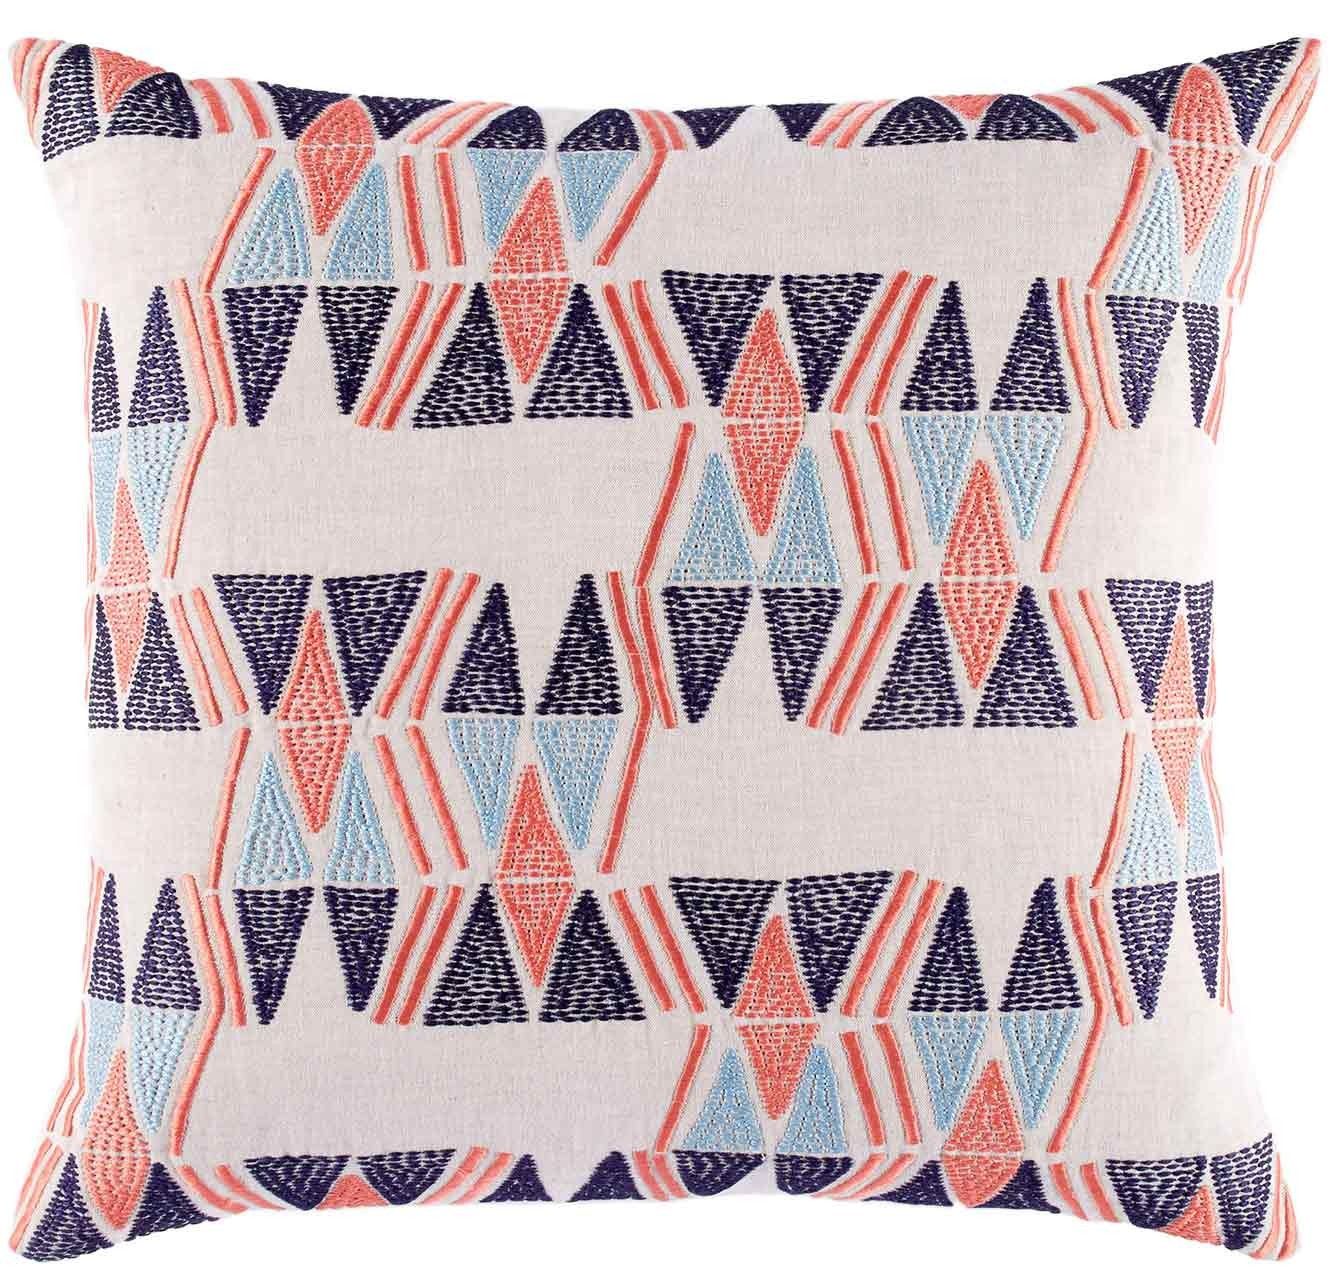 John Robshaw Pillows | John Robshaw Quilt | Textiles Bedding